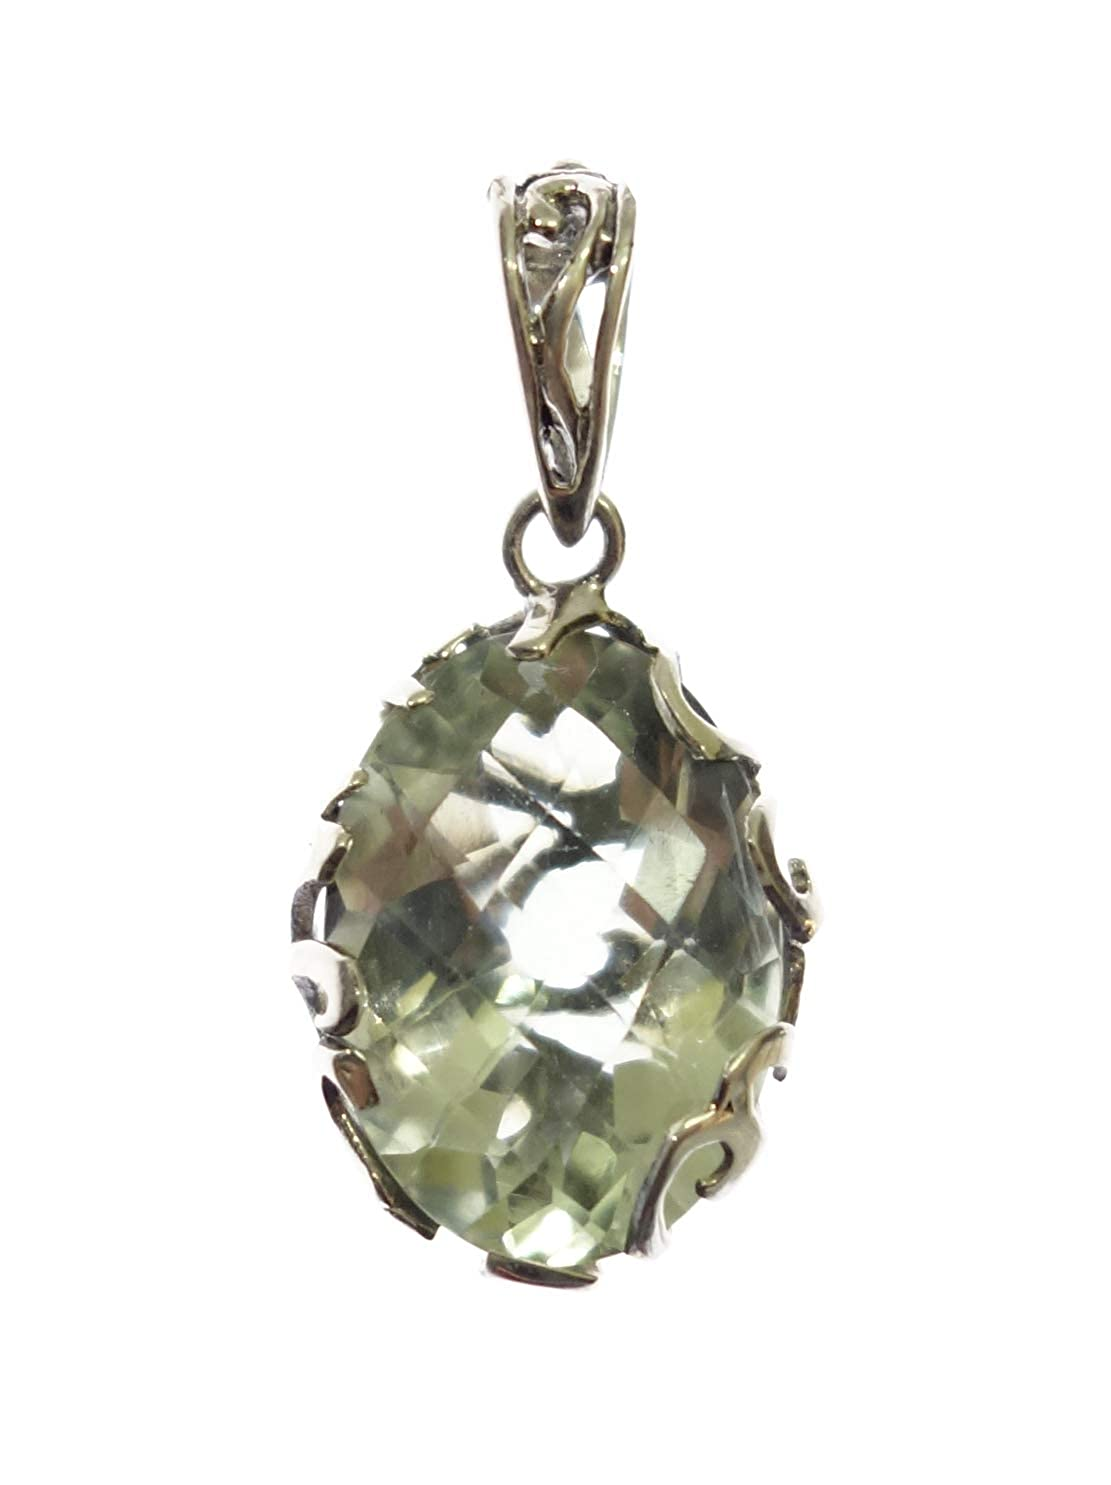 Authentic Balinese 925 Sterling Silver Green Amethyst Gemstone Pendant for Women /& Girls Modern Filigree Fashion Ethnic Reversible Amulet Gypsy Tribal Boho Style Handmade Jewelry Pendant